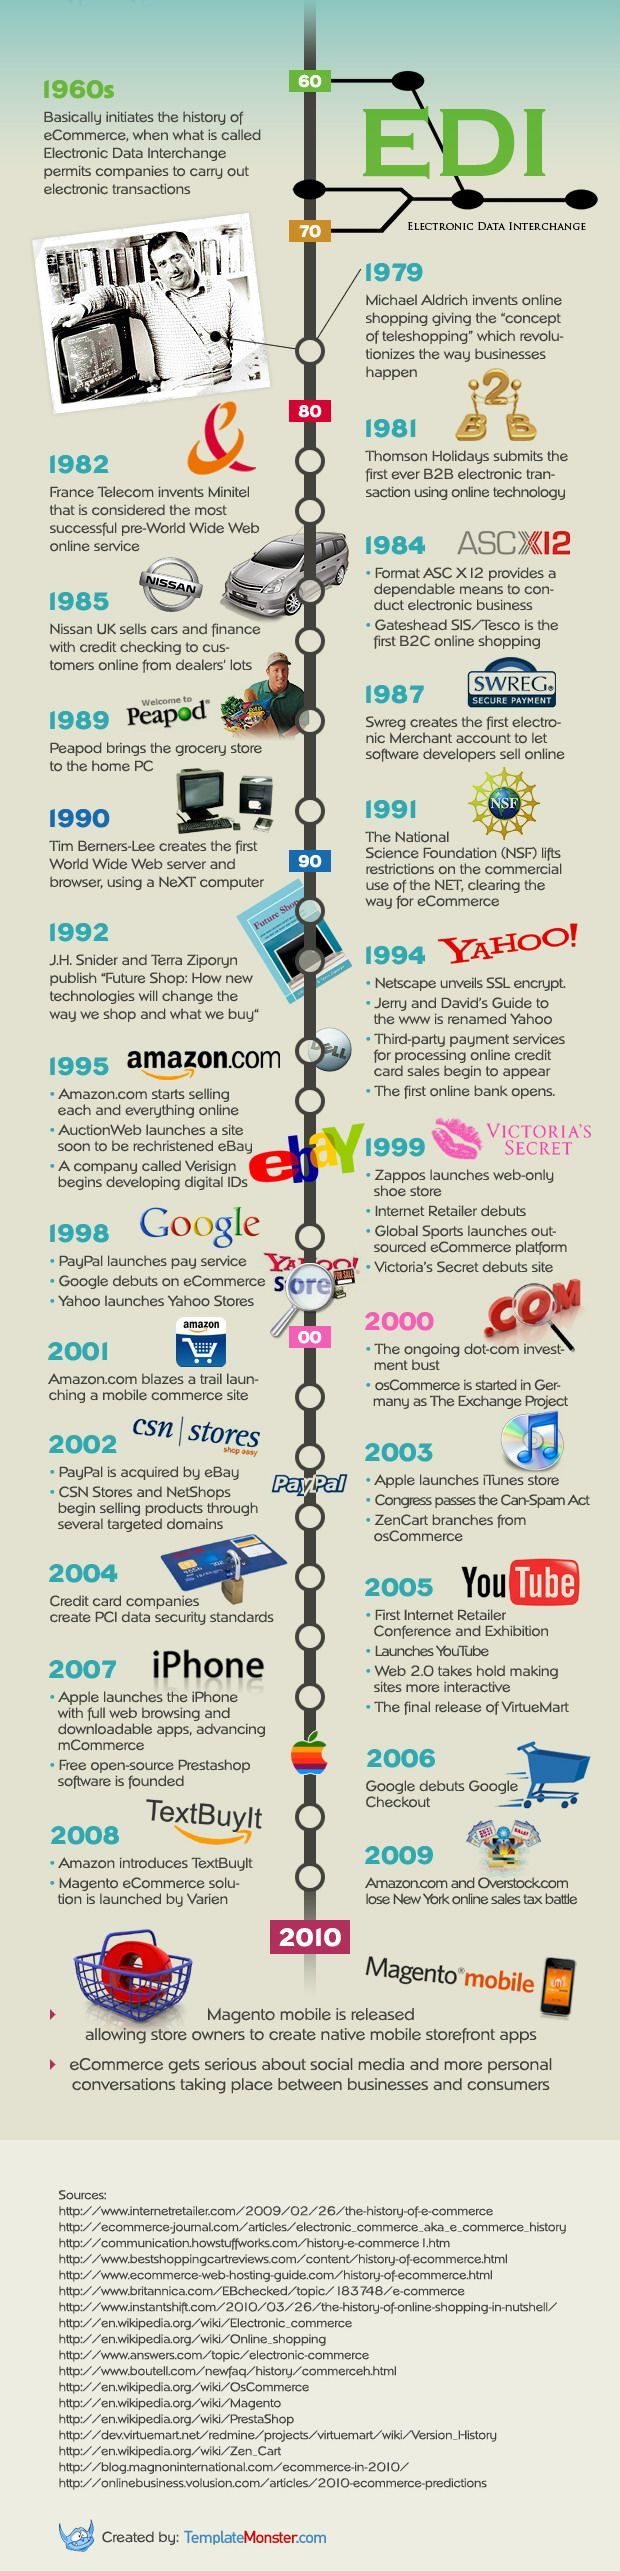 The History of eCommerce – Timeline Infographic    The following infographic displays the uncommon spectacle of the eCommerce-related milestones, integrating the variety of interesting historical facts. Let's dive a bit into some of them to see how eCommerce industry continues to improve and innovate up to the current days.